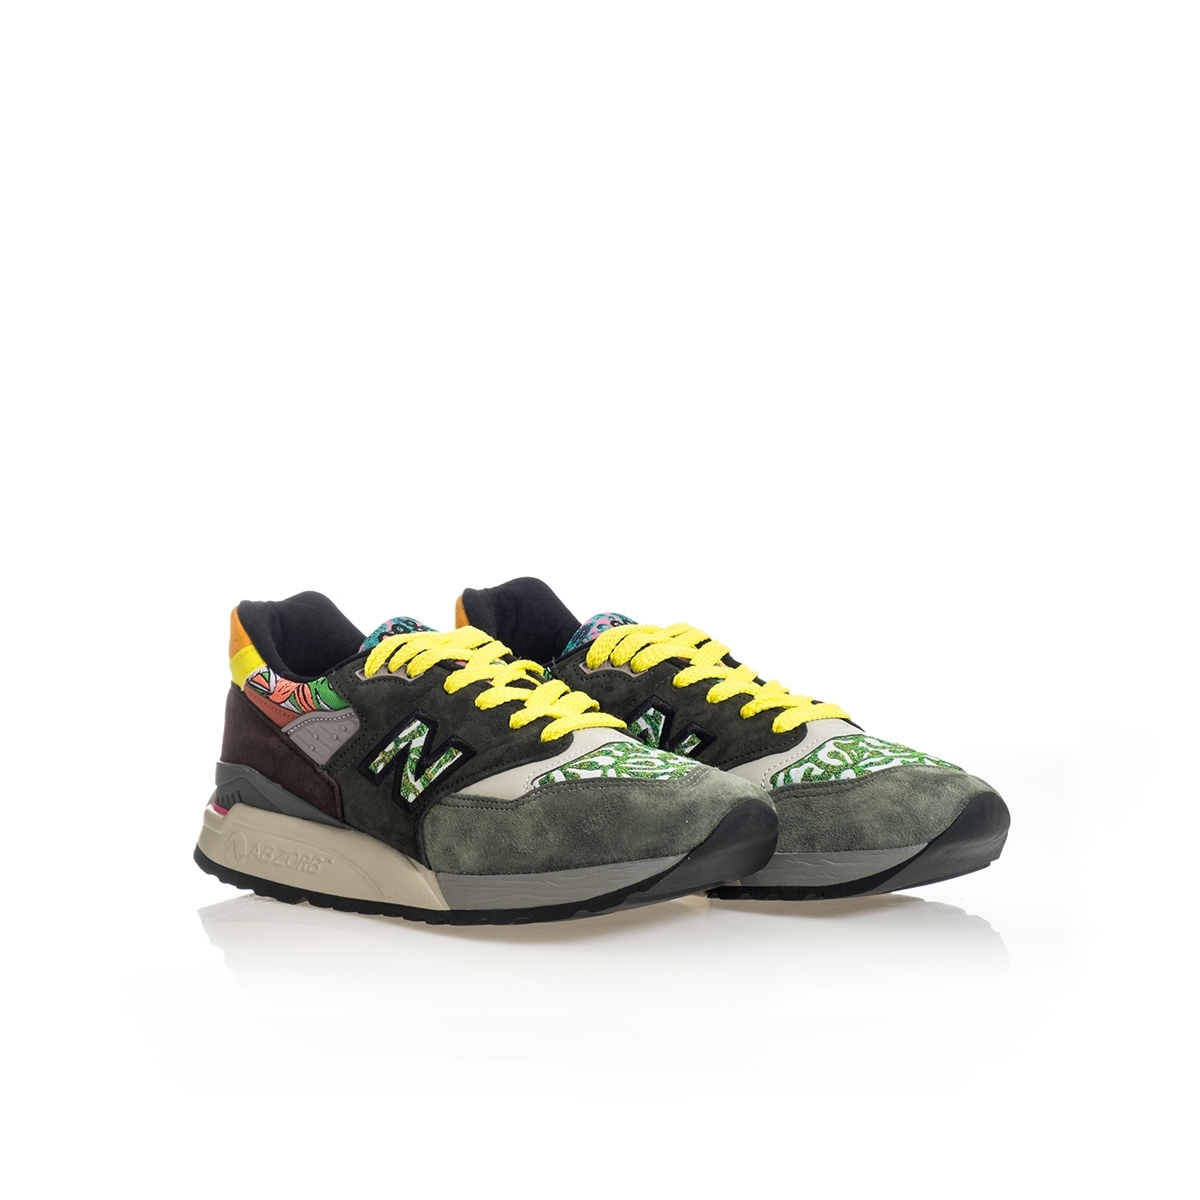 SNEAKERS UOMO NEW BALANCE LIFESTYLE 998 M998AWK MADE IN USA GREEN image 6